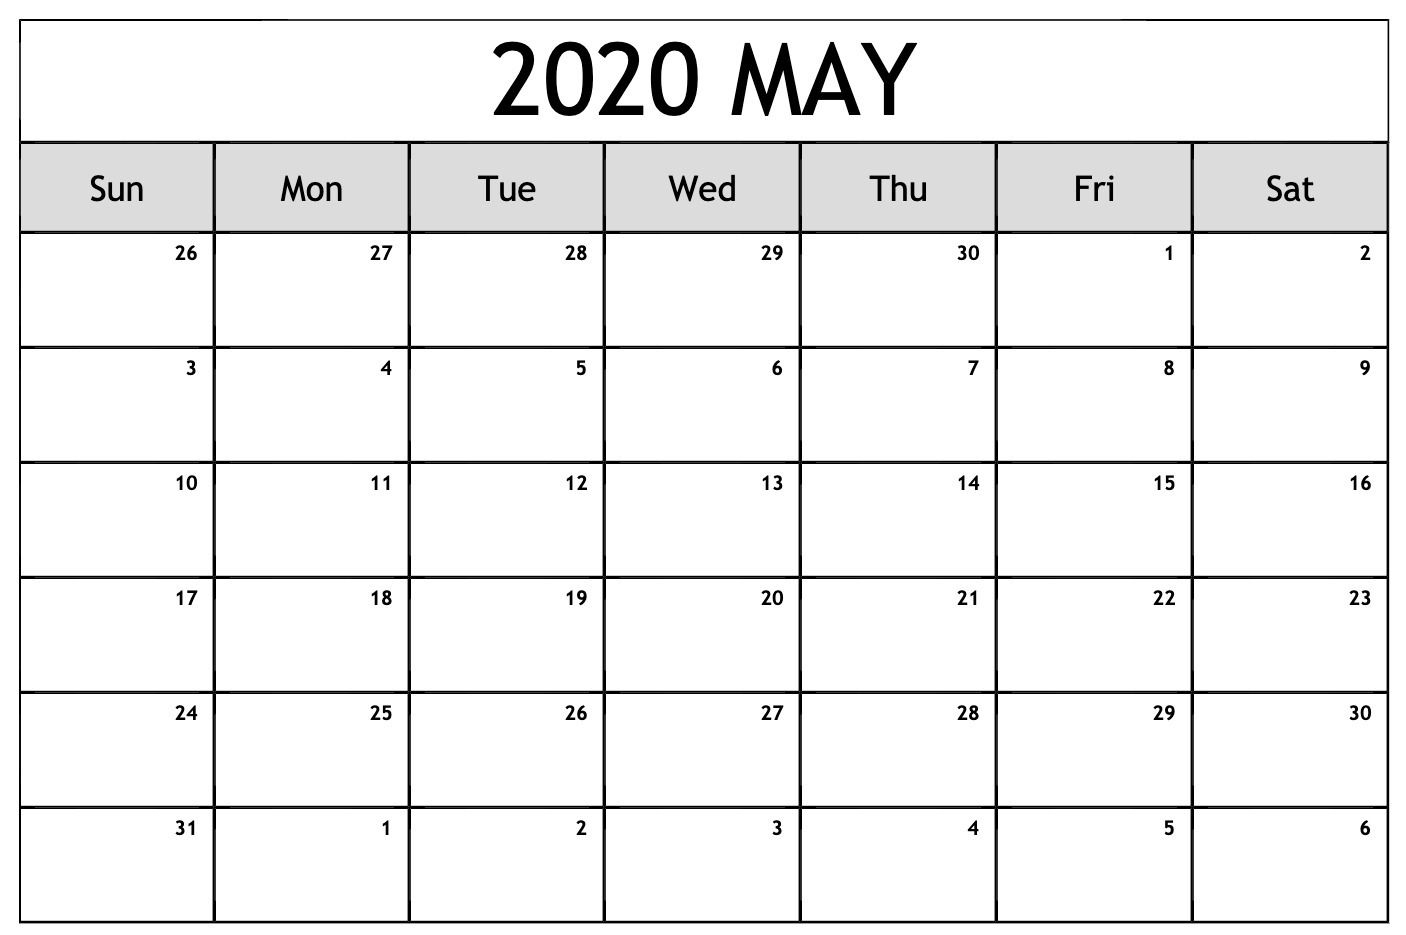 May 2020 Calendar Pdf, Excel, Word Printable Templates